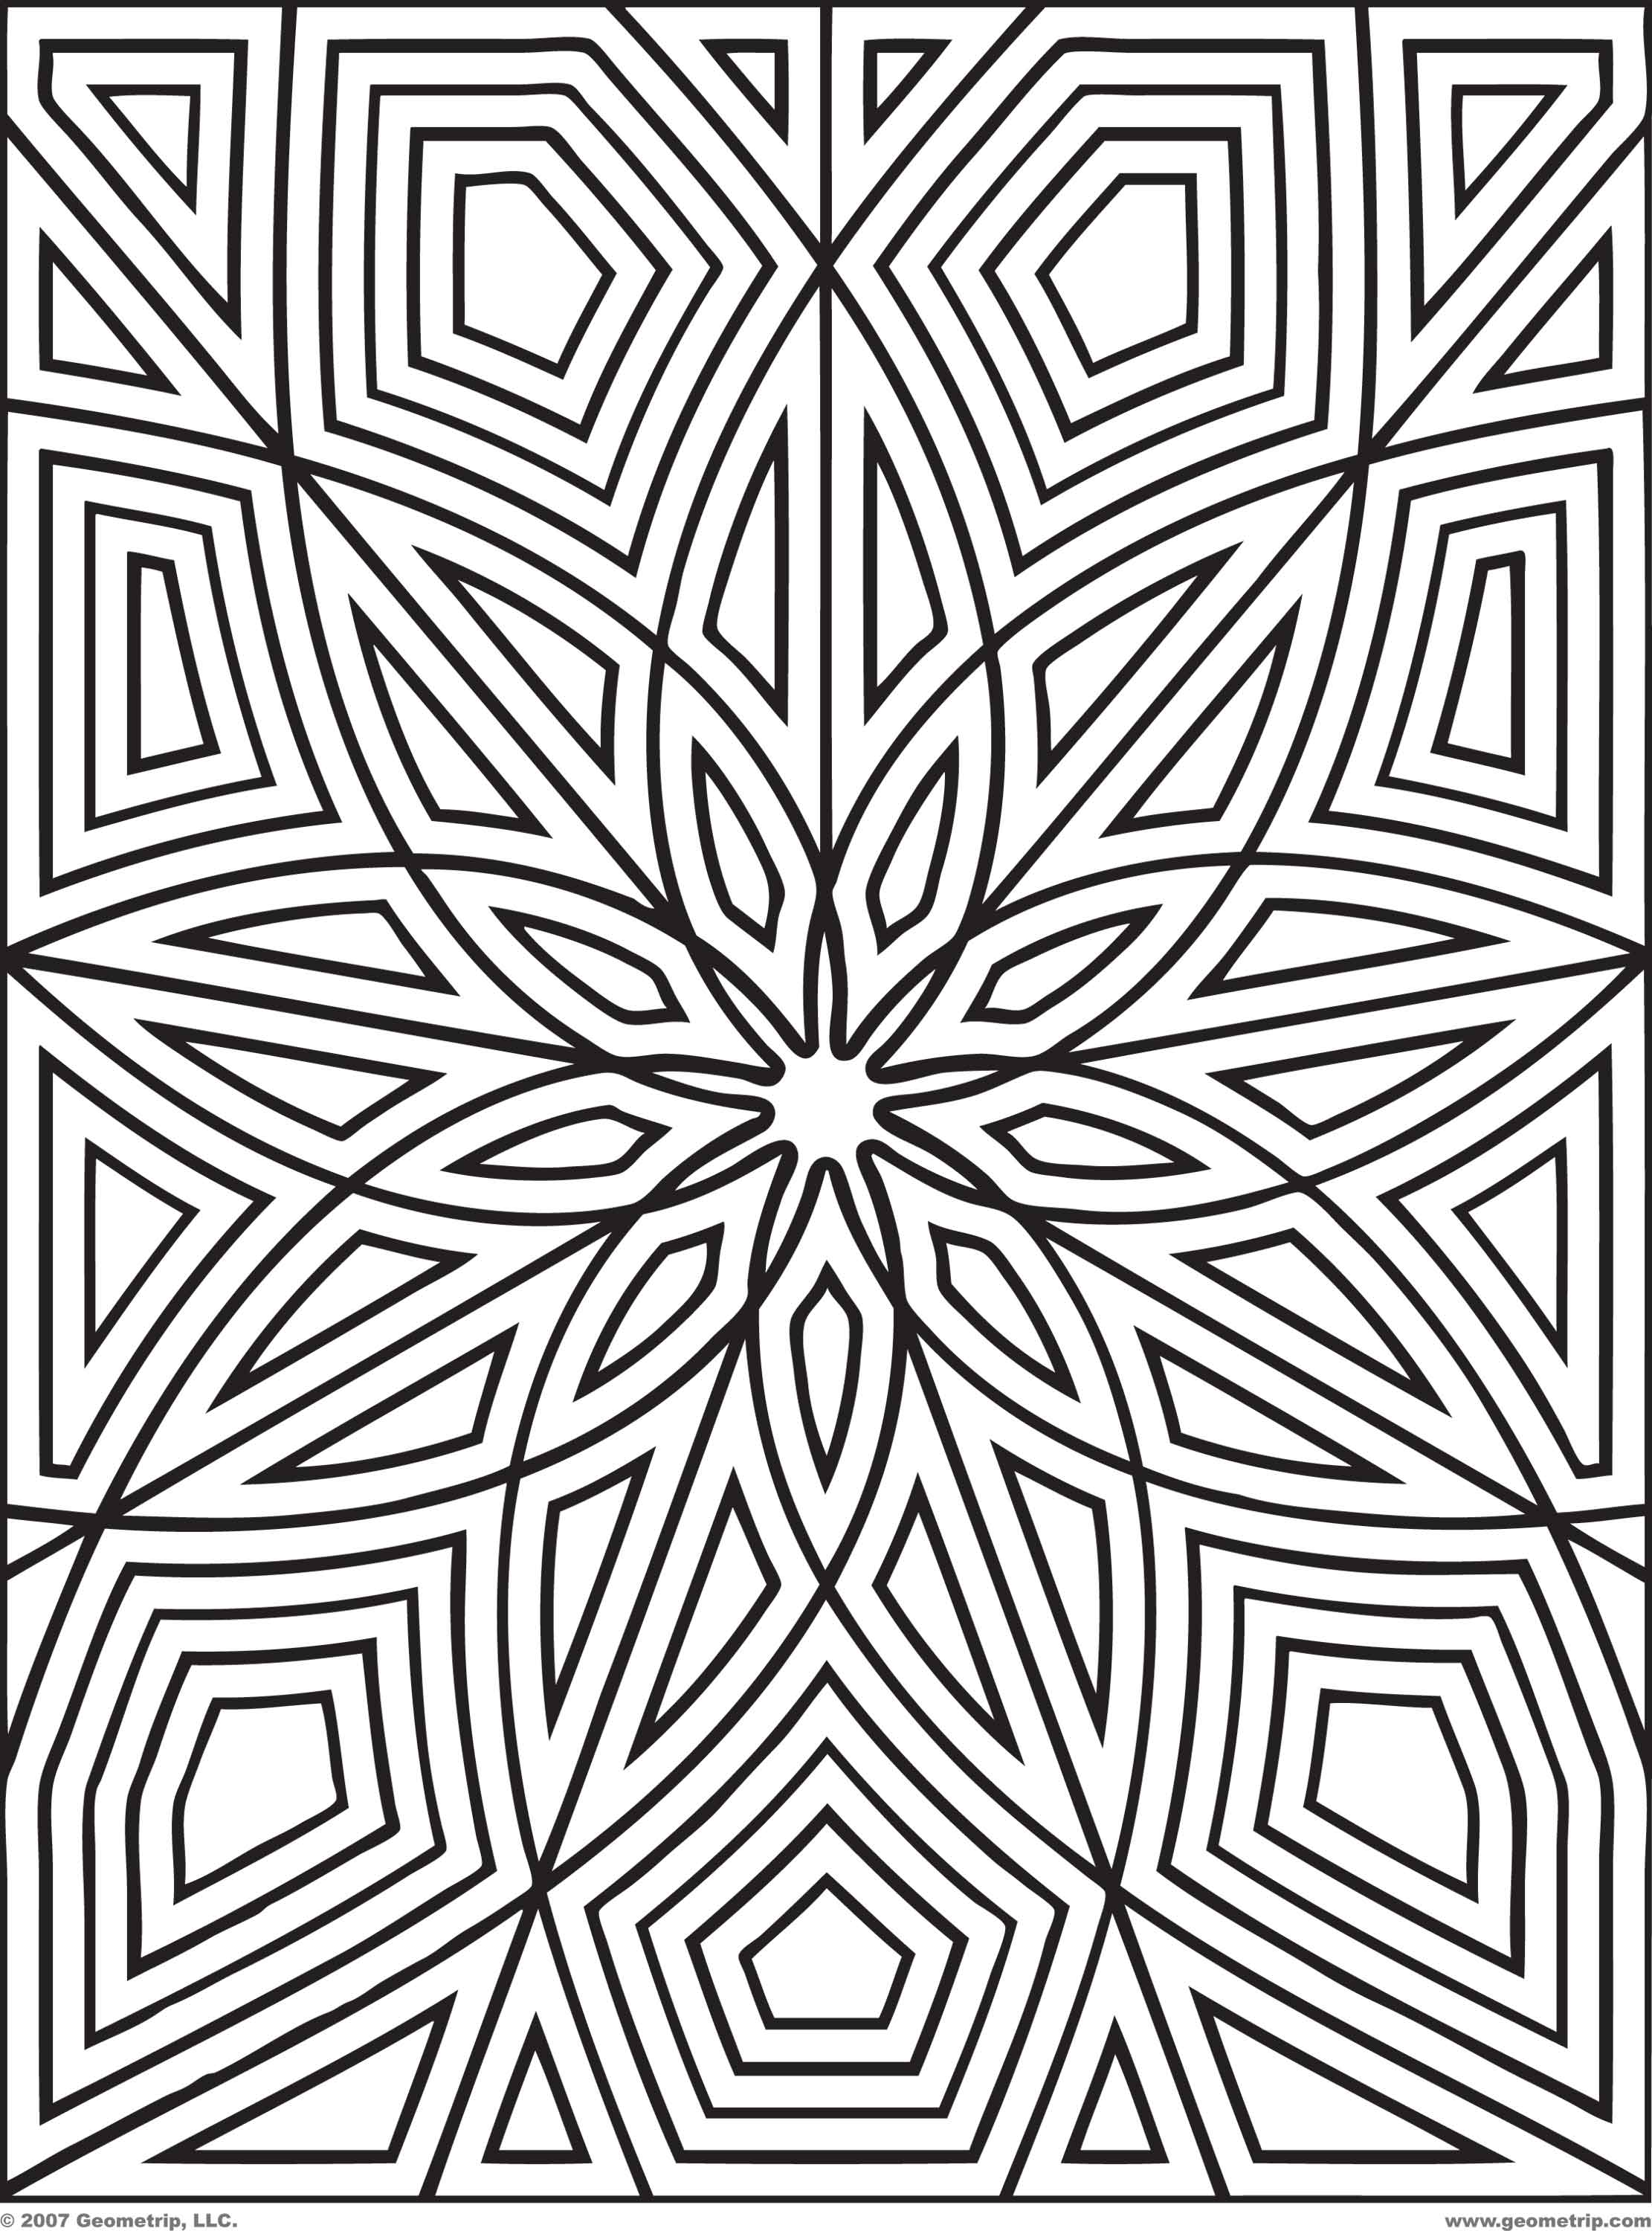 Colouring pages geometric patterns - Geometric Coloring Pages Geometric Coloring Page Easy Geometric